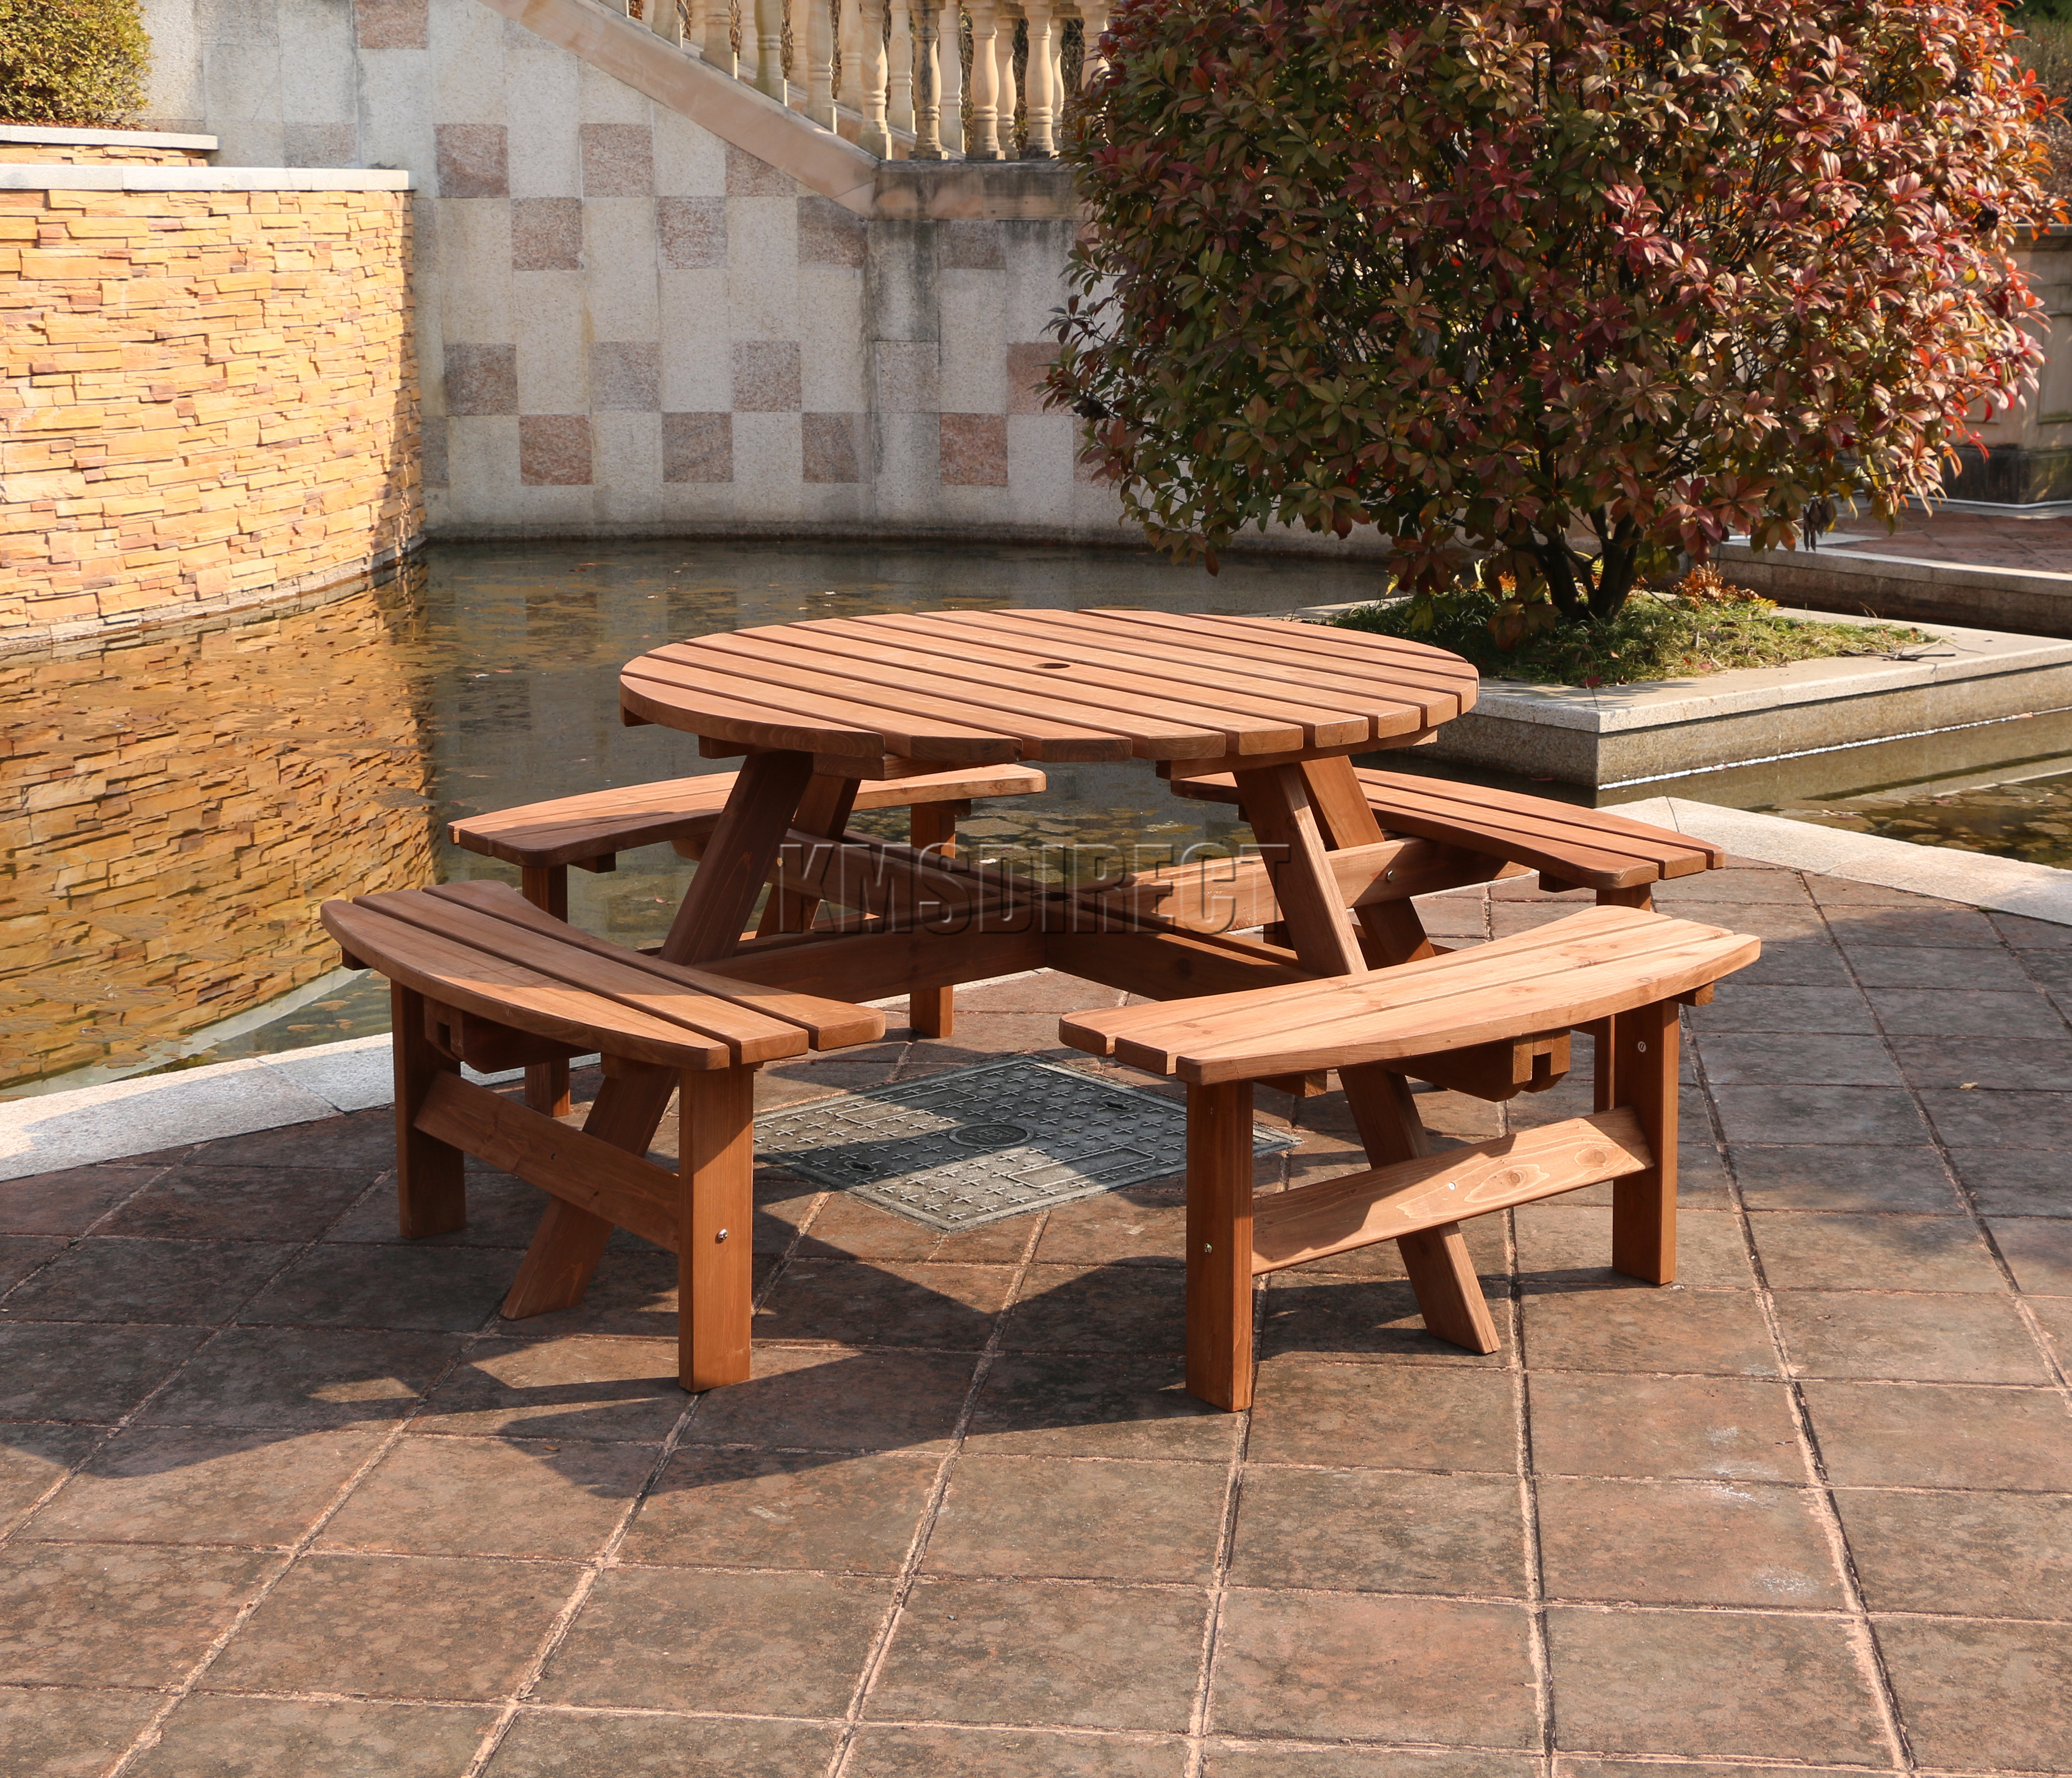 Garden Patio 8 Seater Wooden Pub Bench Round Picnic Table